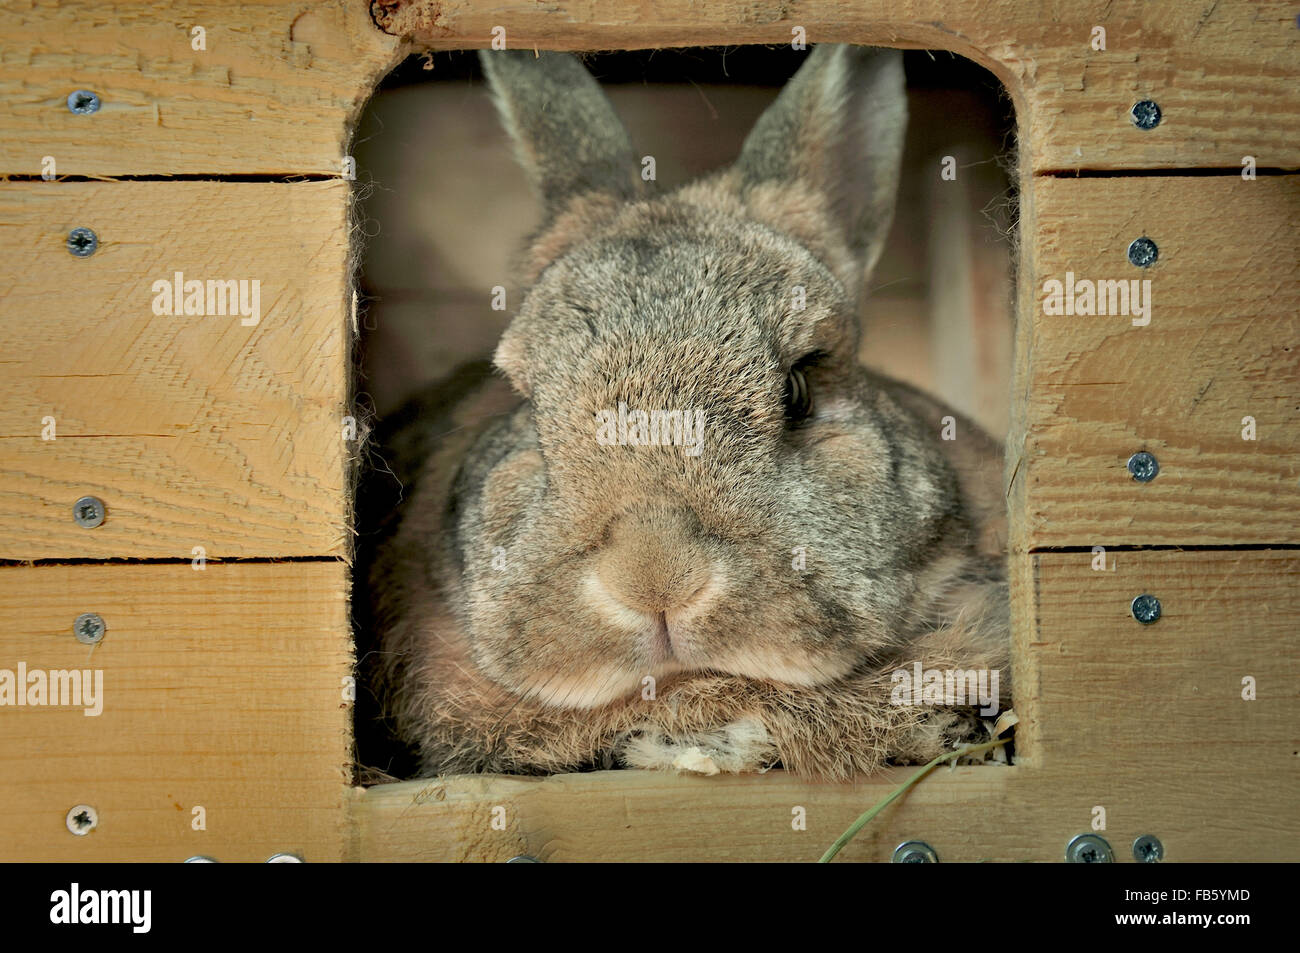 brown pet rabbit resting in wooden house - Stock Image